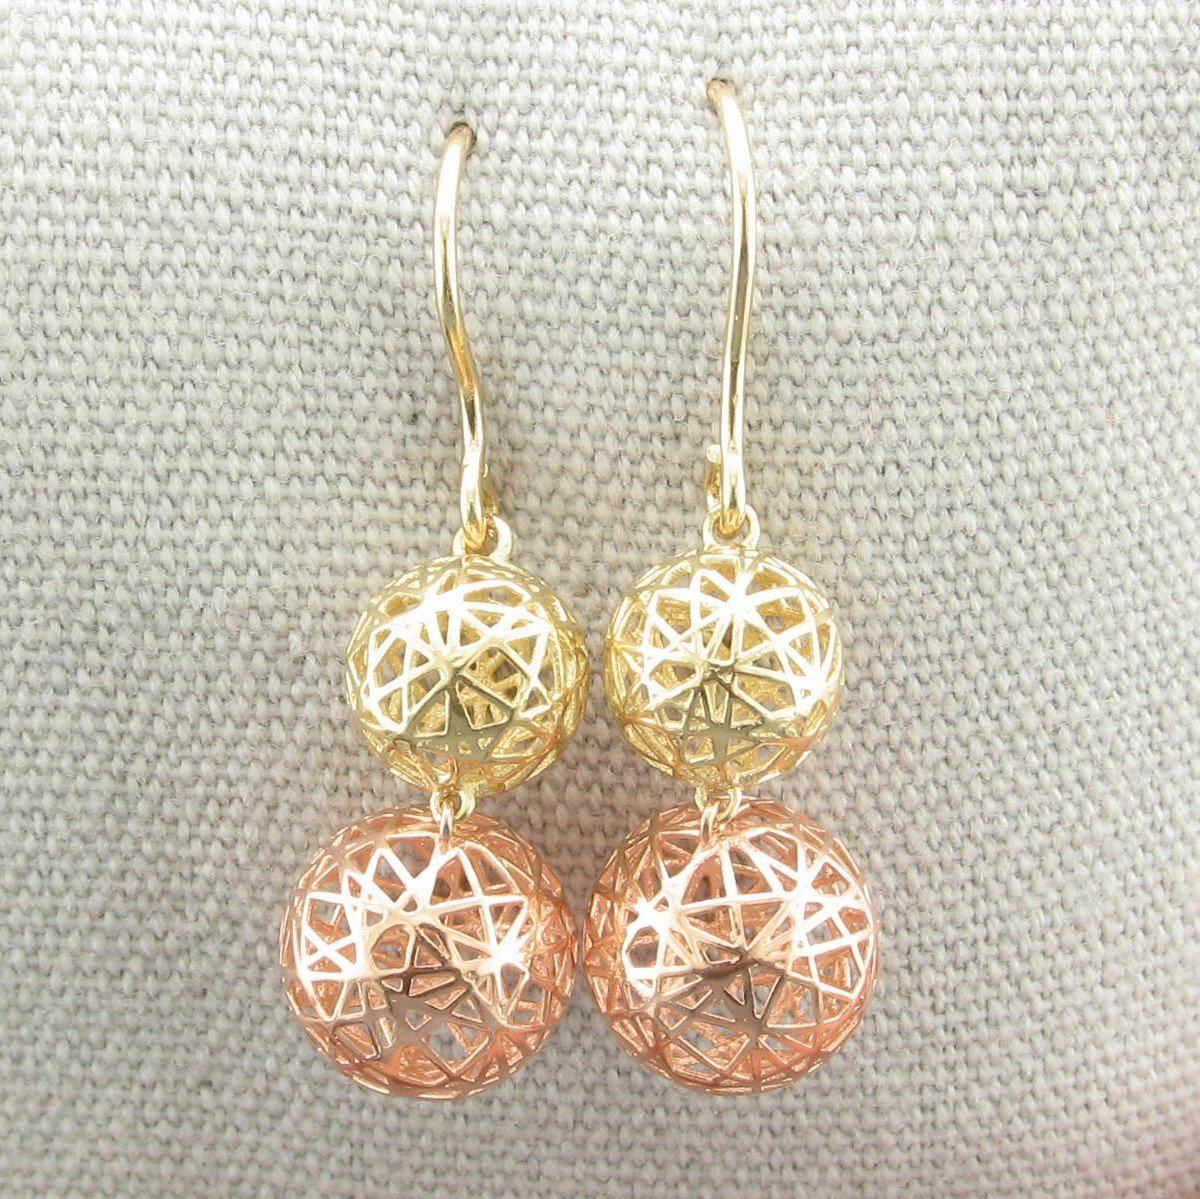 14K Yellow and Rose Gold 3-D Ball Dangle Earrings